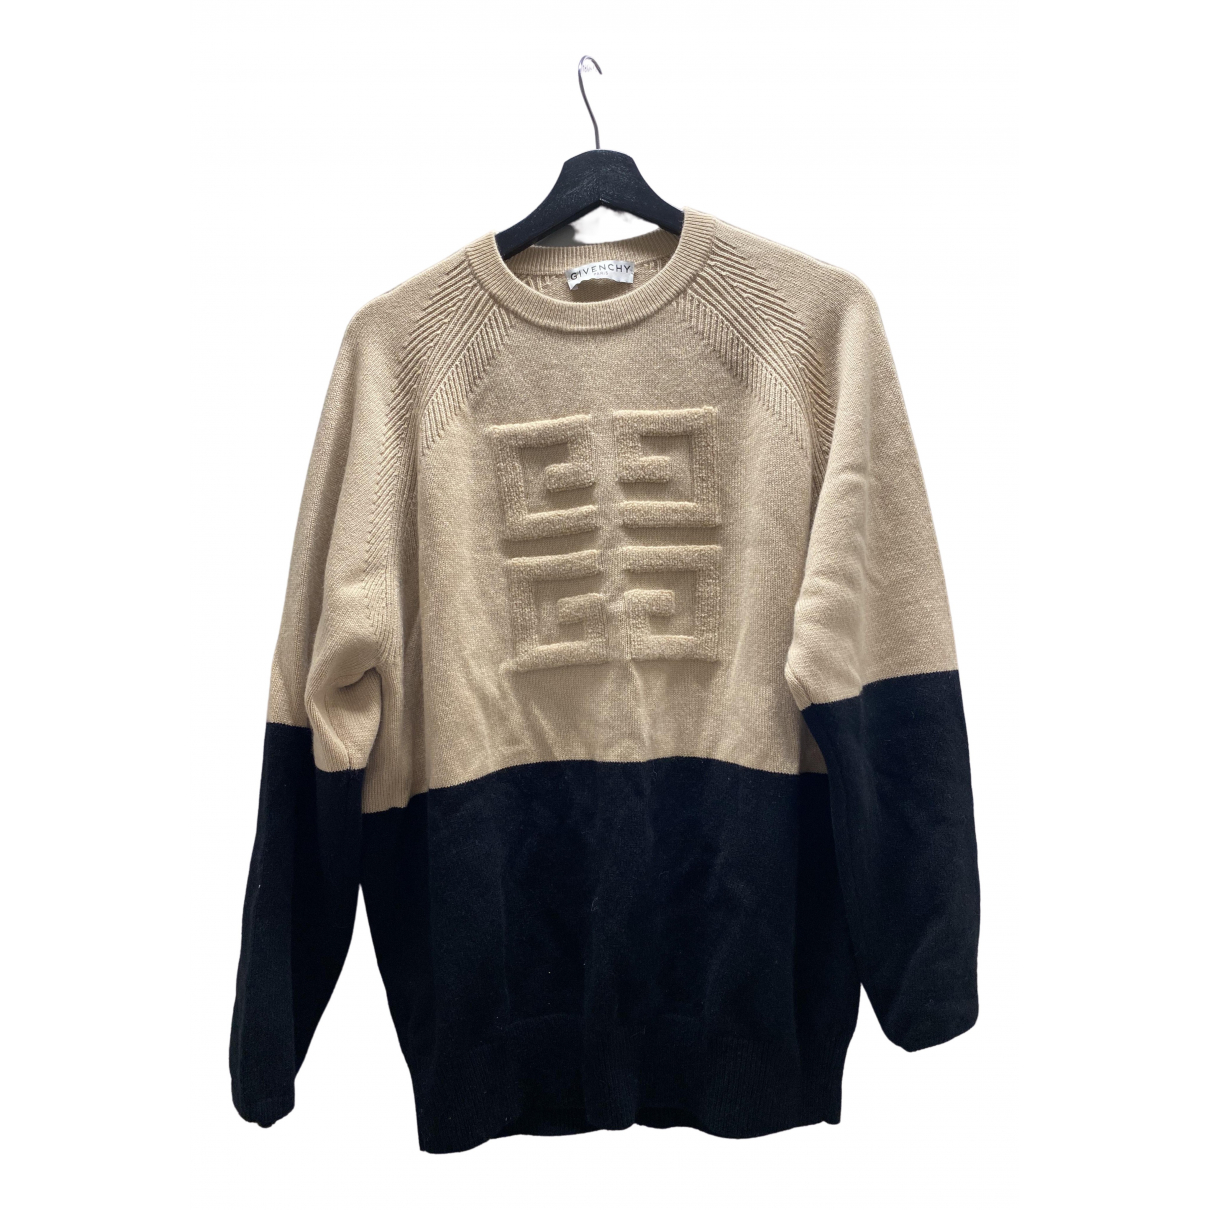 Givenchy \N Cashmere Knitwear for Women S International